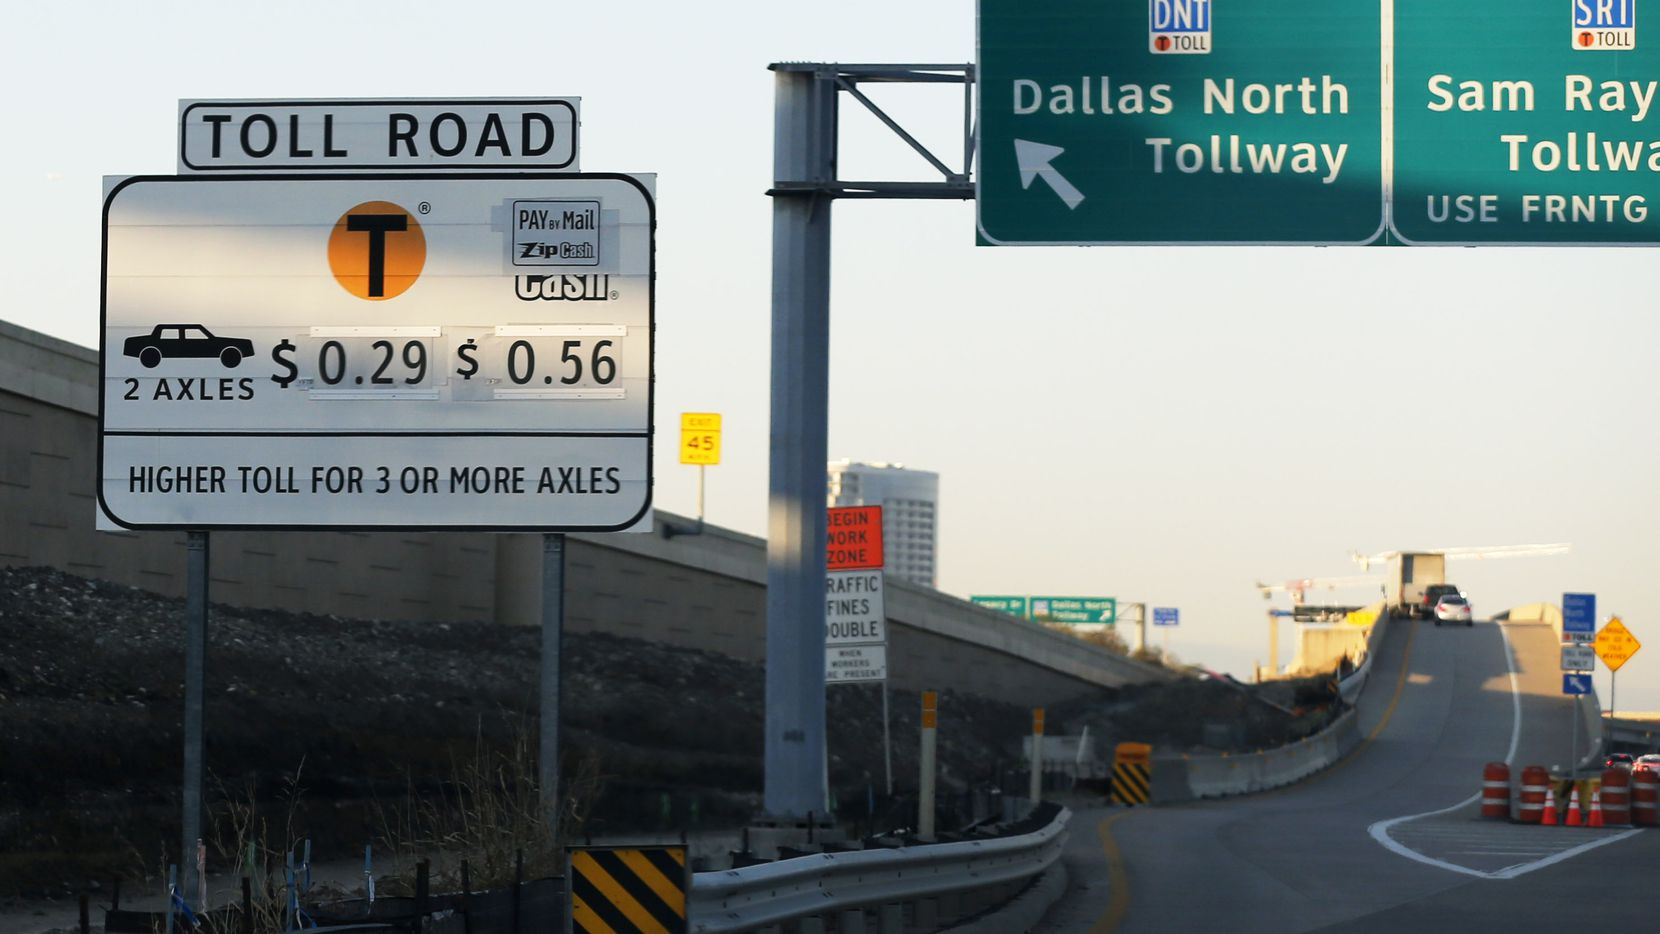 The Dallas North Tollway can shave a good bit of time off your travel — but it'll cost you.